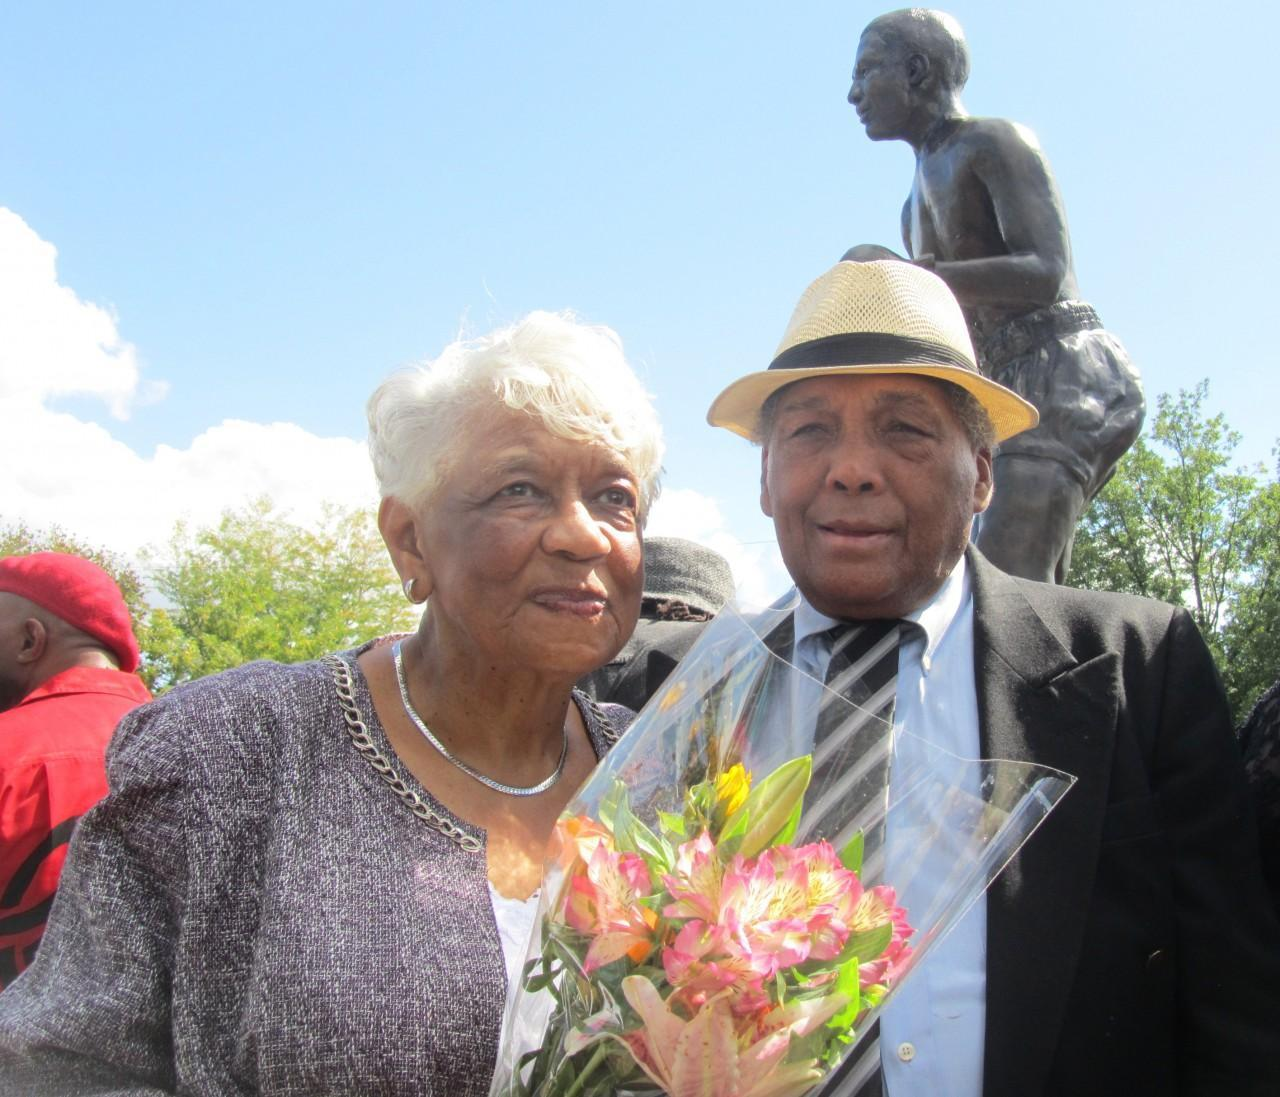 Geraldine Moore and Sugar Ramos share a moment at the unveiling of the Davey Moore statue. Moore died after a championship boxing match with Ramos in 1963. (Mike Foley/Only A Game)